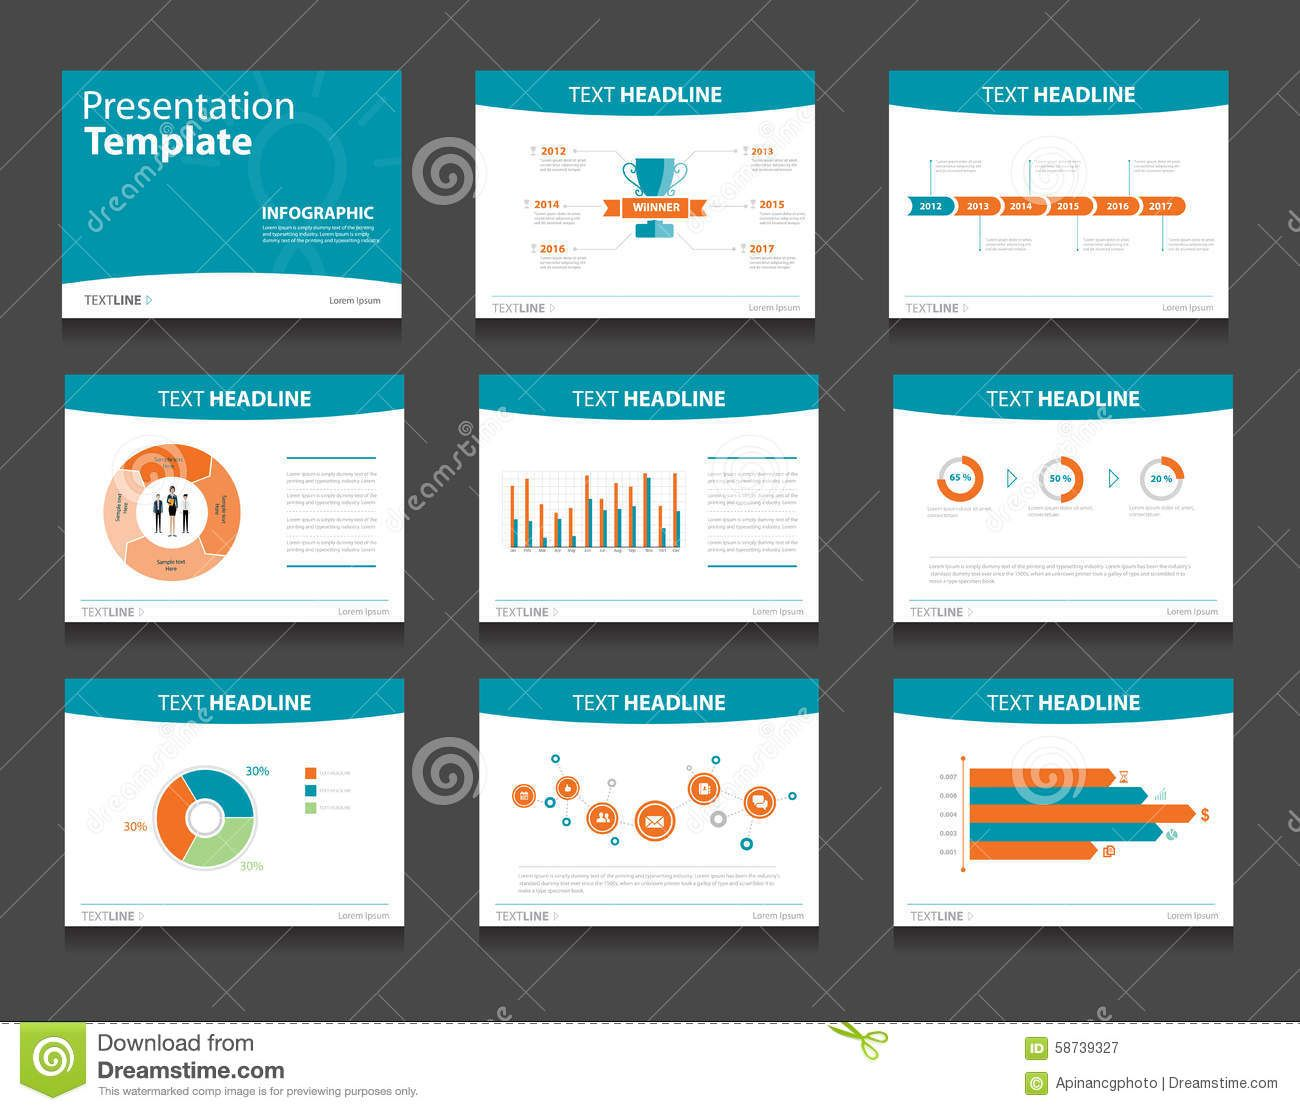 Powerpoint slide templates